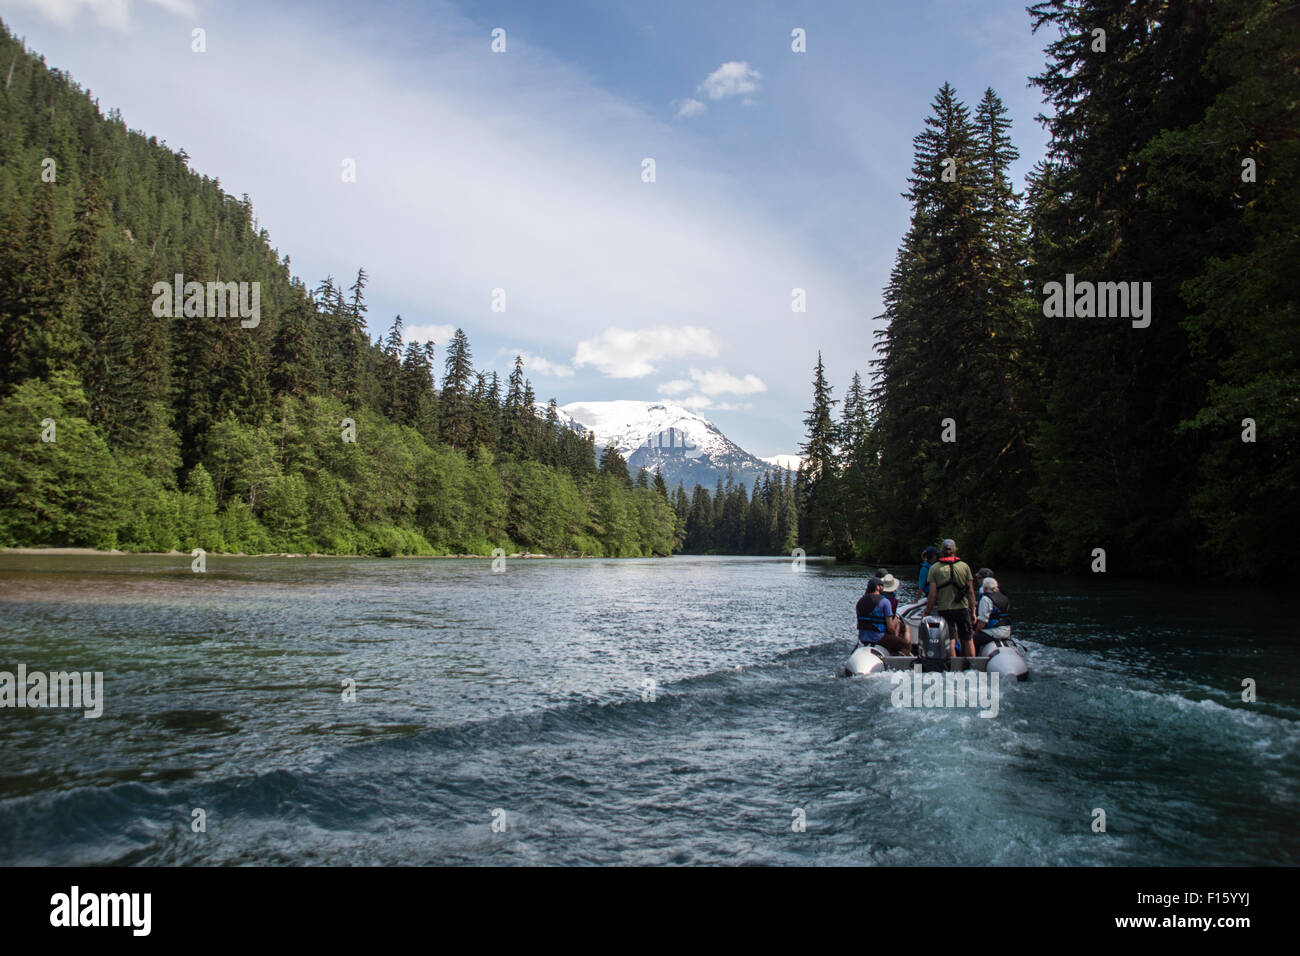 A wilderness guide and tourists travel up a remote river by zodiac in the Great Bear Rainforest of British Columbia, - Stock Image